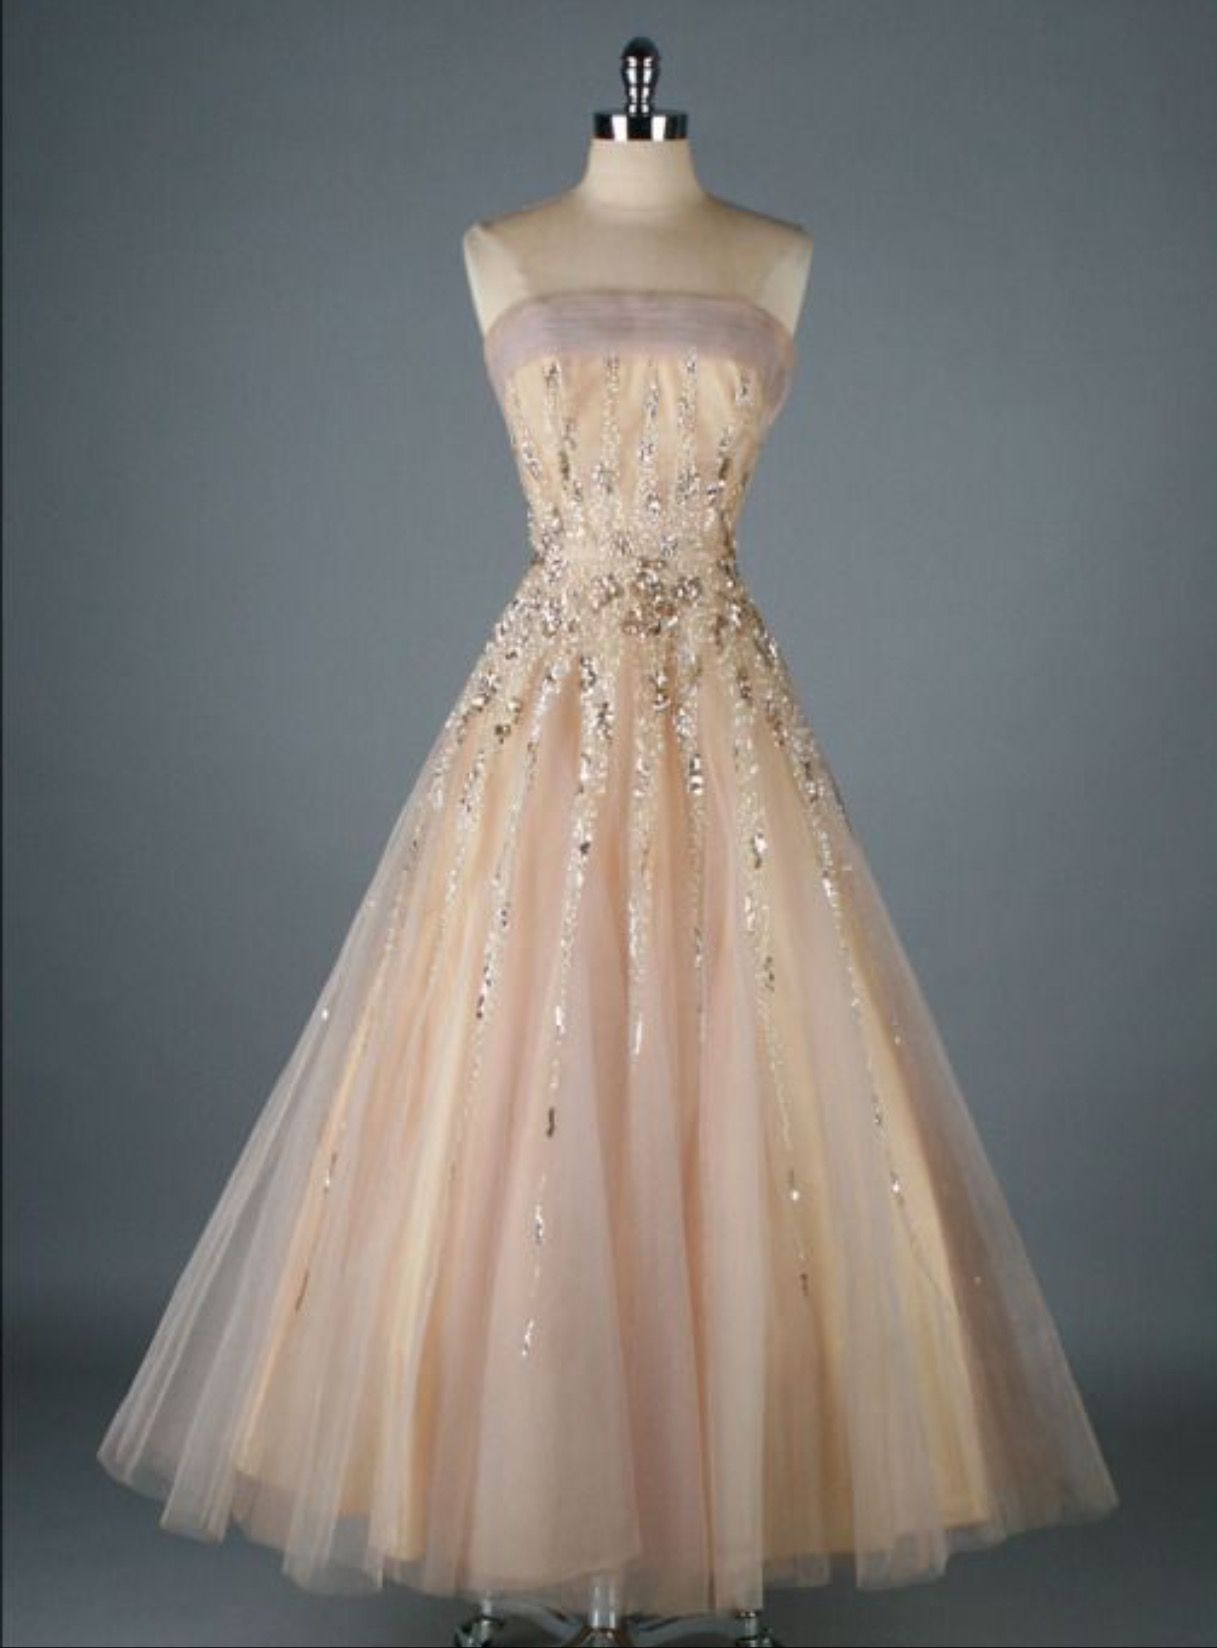 Pin by Amy Shirley on My Vintage Loves | Pinterest | Designer gowns ...